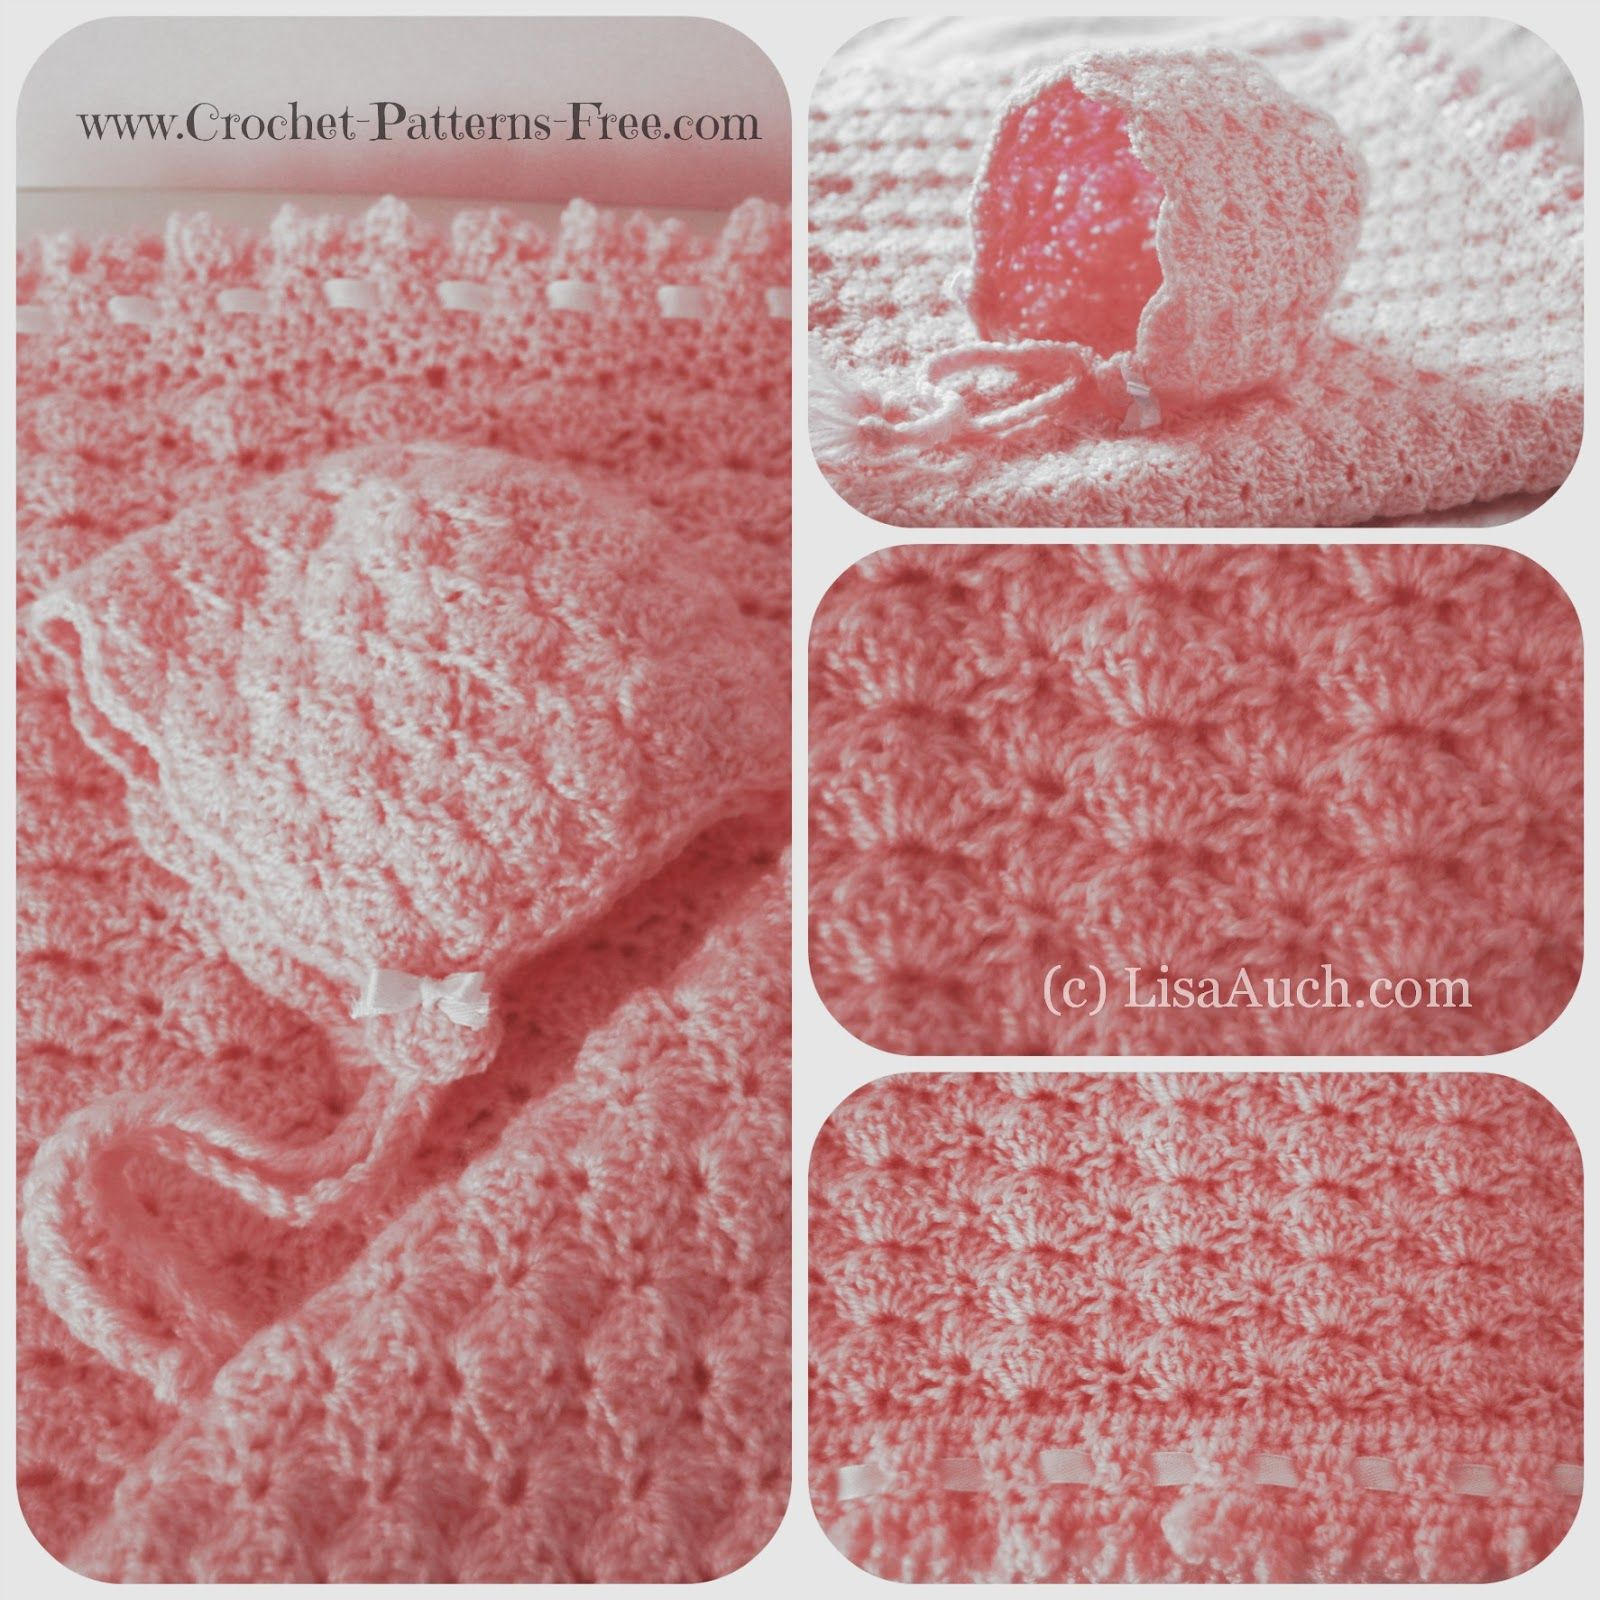 Free crochet baby blanket pattern in shell stitch baby bonnet free crochet baby blanket pattern in shell stitch baby bonnet pattern free crochet pattern bankloansurffo Image collections